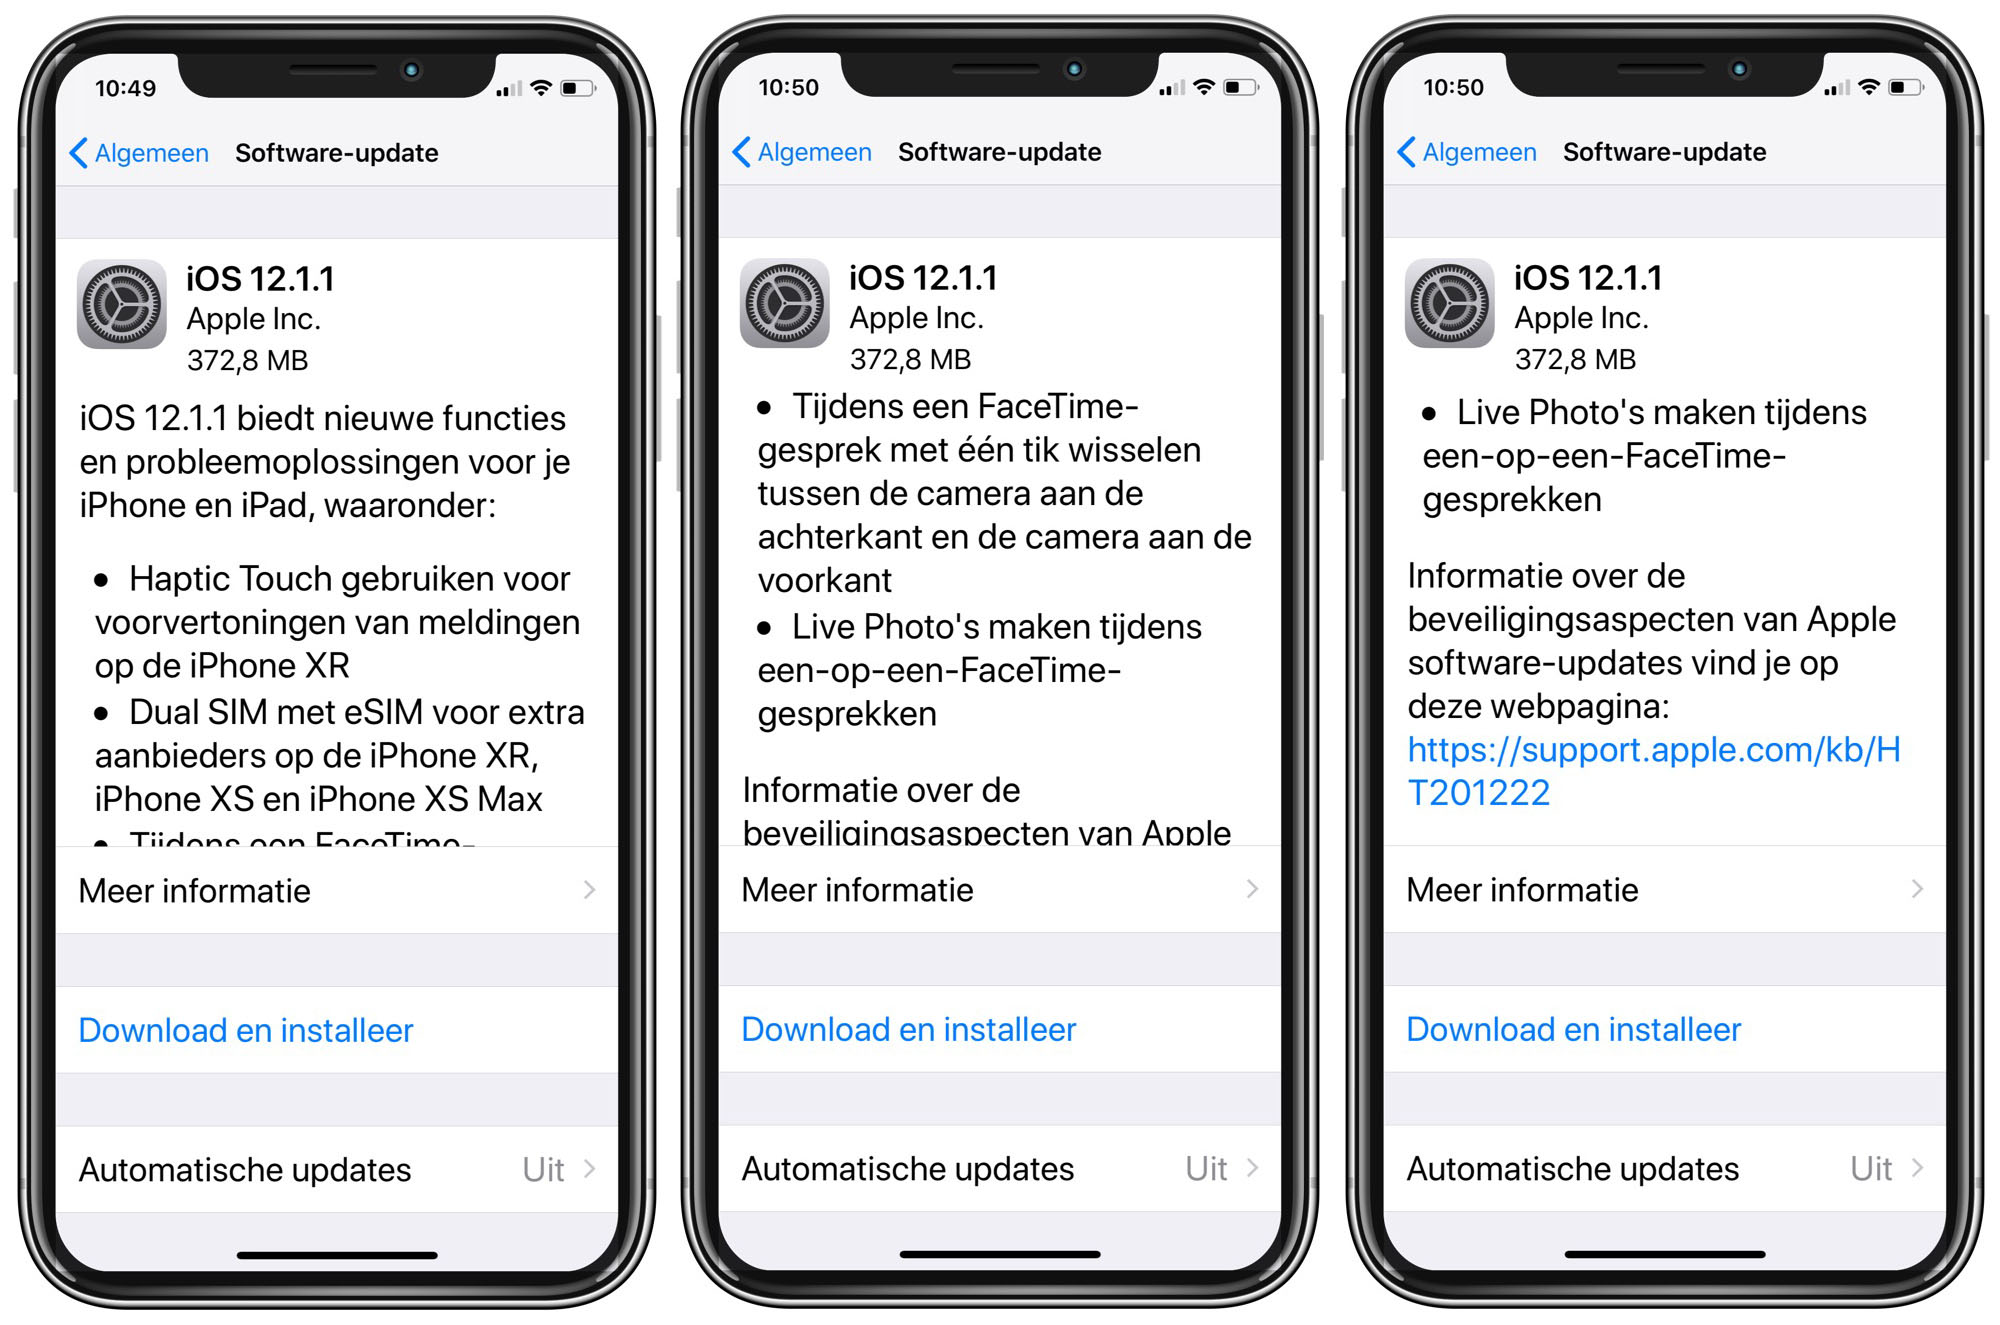 https://www.macfreak.nl/modules/news/images/zArt.ReleaseNotes-iOS12.1.1.jpeg